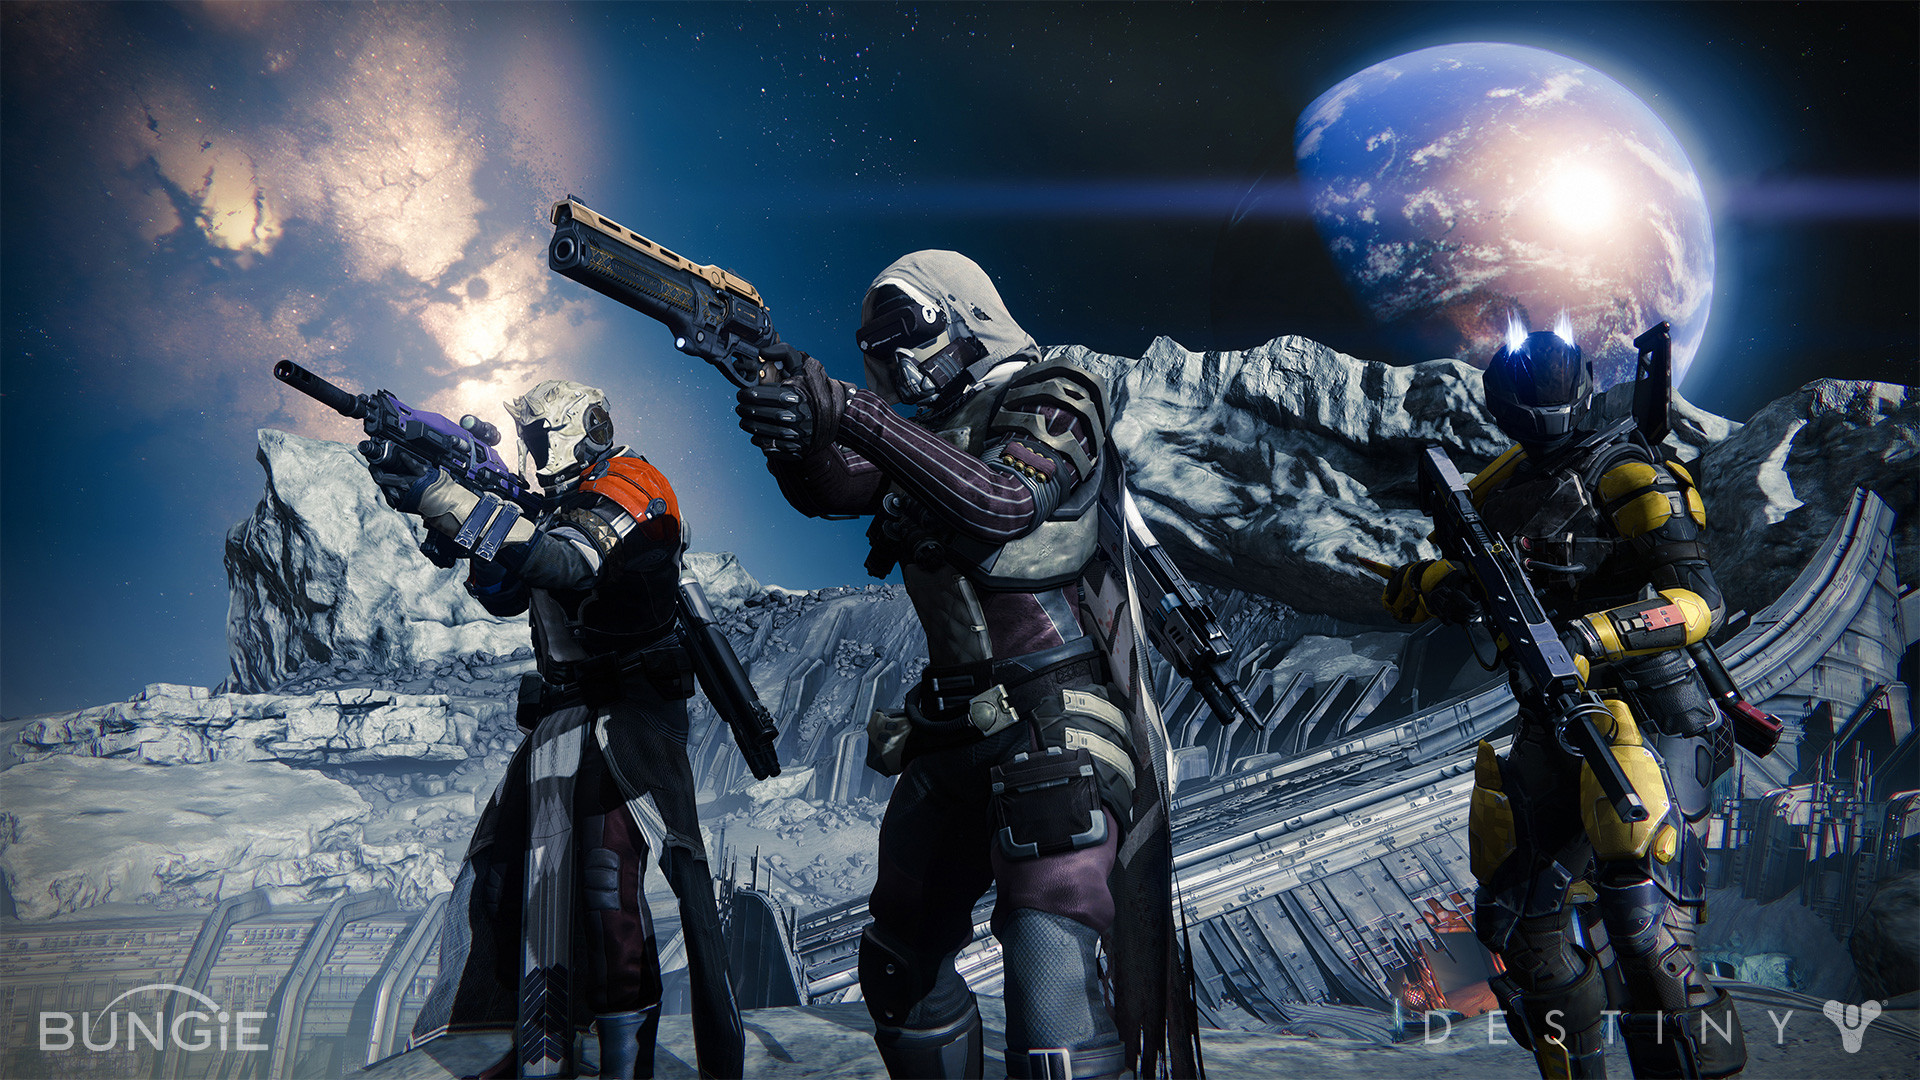 70 Awesome Destiny Wallpapers for your Computer Tablet or Phone 1920x1080